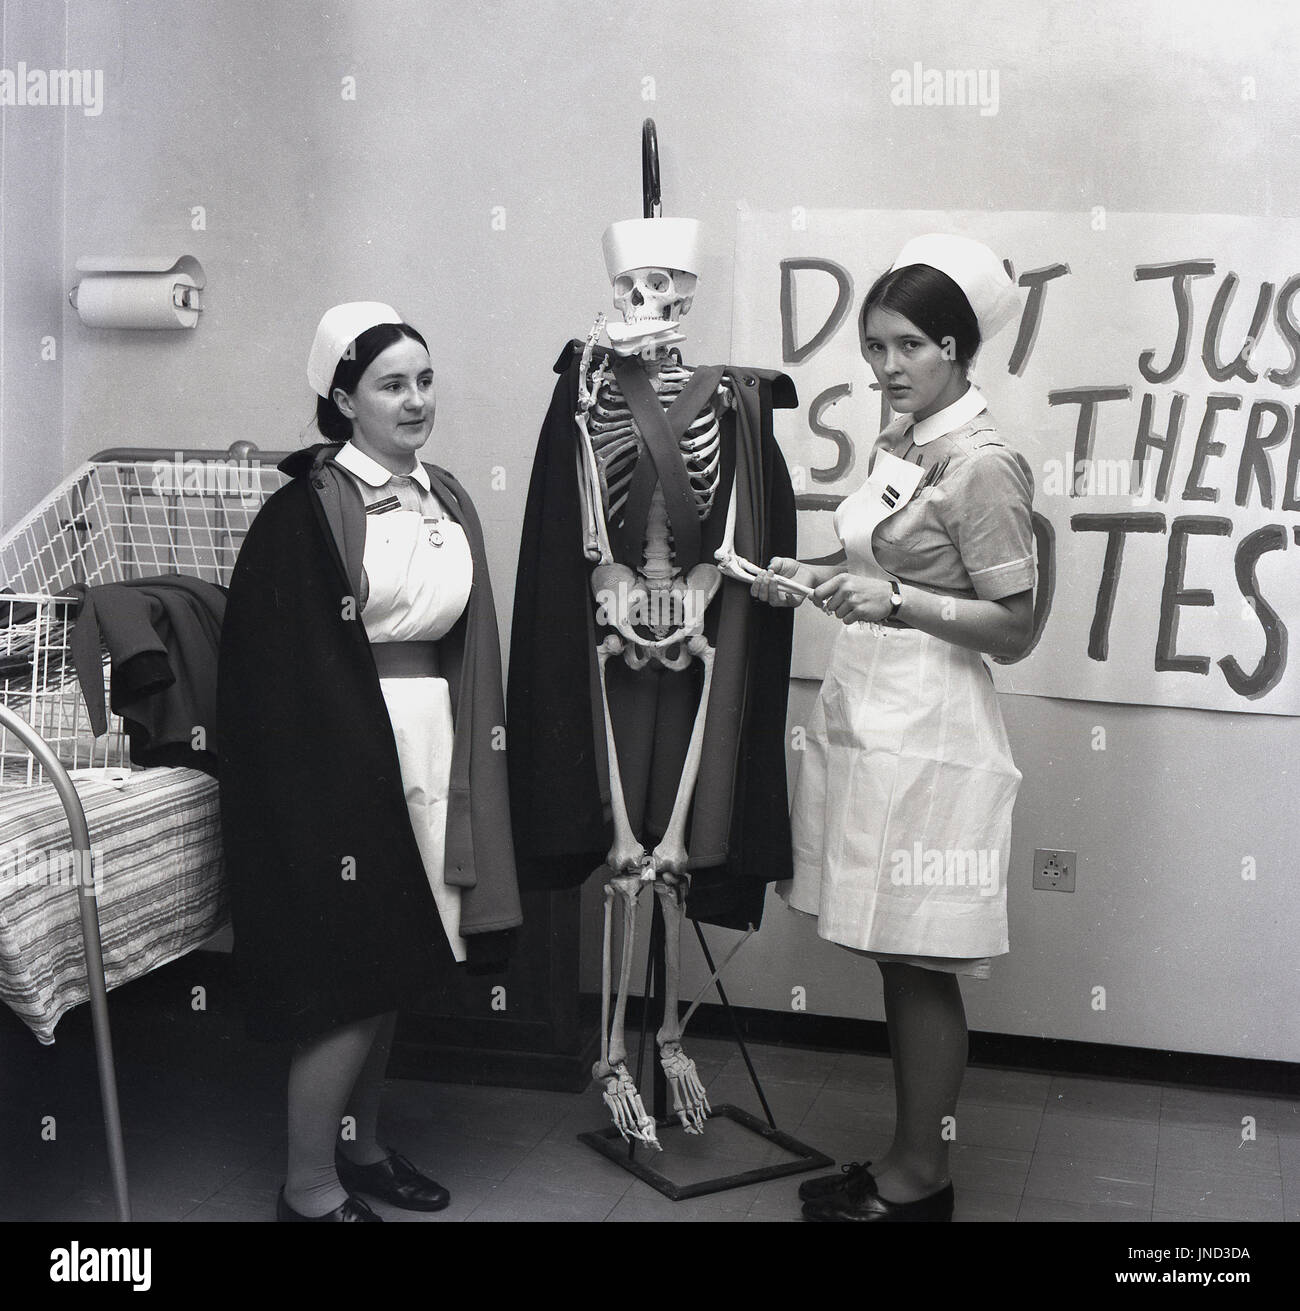 1970s, historical, two female nurses with a model of a human skeleton with a nurse's cloak and hat on and a sandwich pressed into its mouth.The nurses were using the skeleton to make a point in their protest about trying to live and survive on low wages. - Stock Image